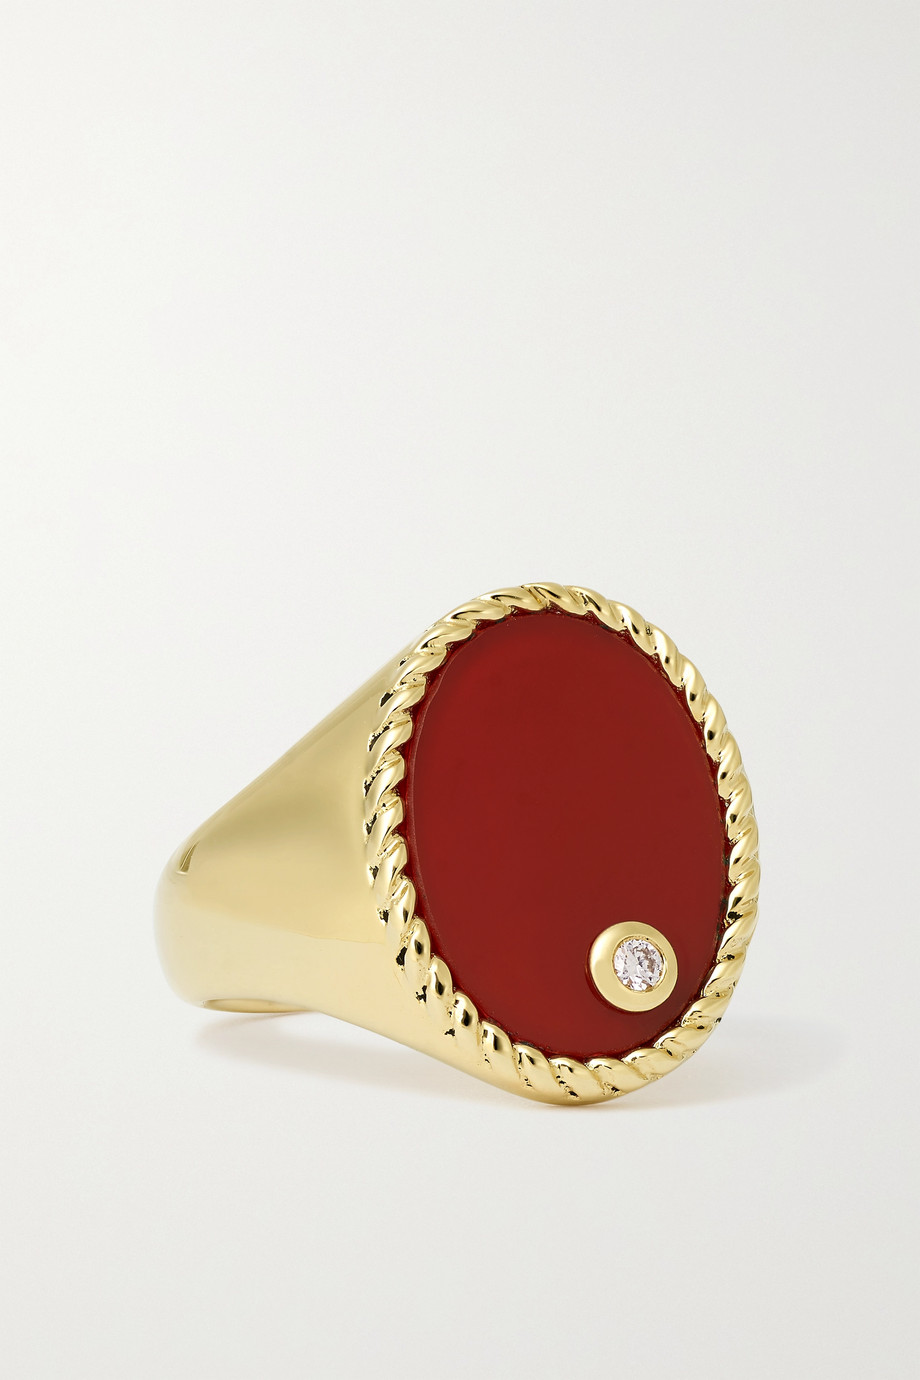 YVONNE LÉON 9-karat gold, agate and diamond signet ring